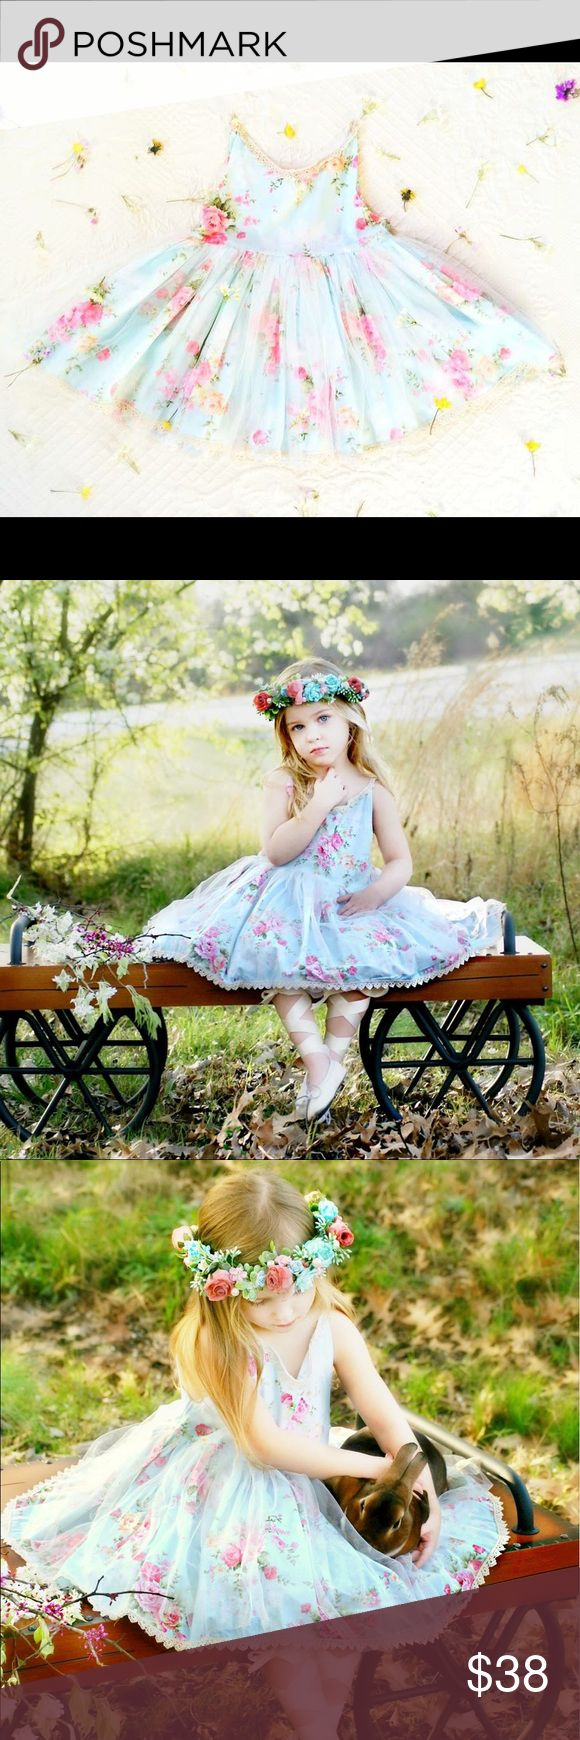 Secret Garden Tutu Dress Like Dollcake sz 4/5 7/8 NOT DOLLCAKE I have just a few of these left! They are perfect for Easter. They can usually ship same day.  Halos can be purchased from the talented Melissa Hammack RAG Couture Bowtique. Photography work by the talented Naomi&Co. Photography. Model is age 3 wearing a size 4/5 for size reference. Model wore size 2/3 best though.   Dresses shipped within the USA. ~Very limited stock~ Ready To Ship size 12-24m SOLD OUT size 2/3 SOLD OUT 3 size…